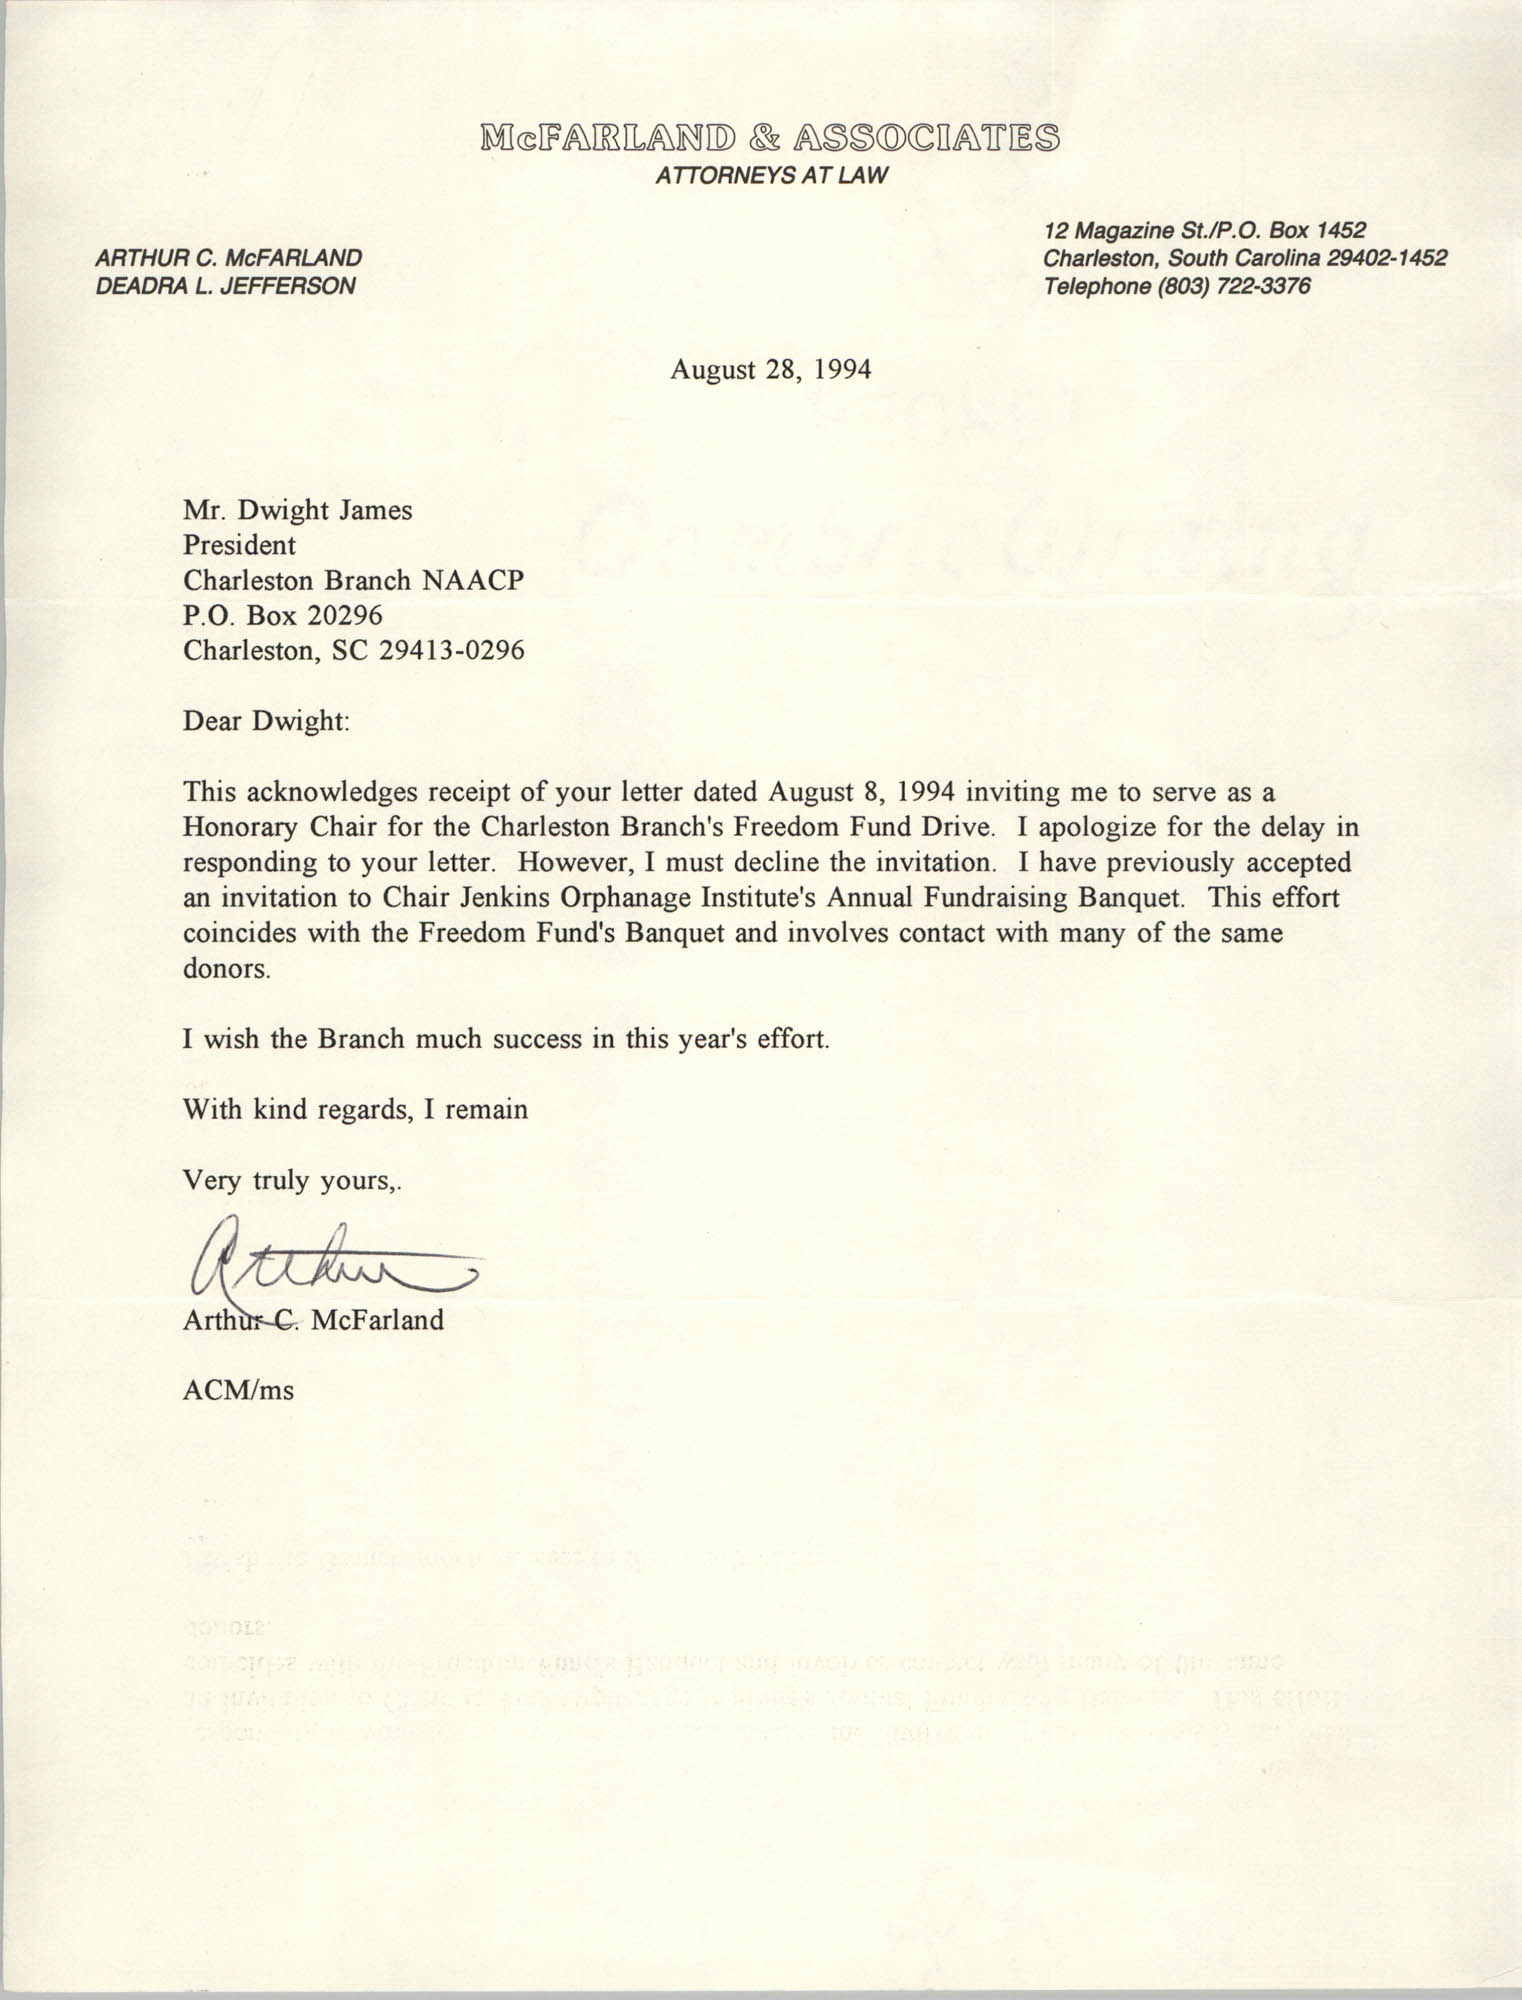 Letter from Arthur C. McFarland to Dwight C. James, August 28, 1994